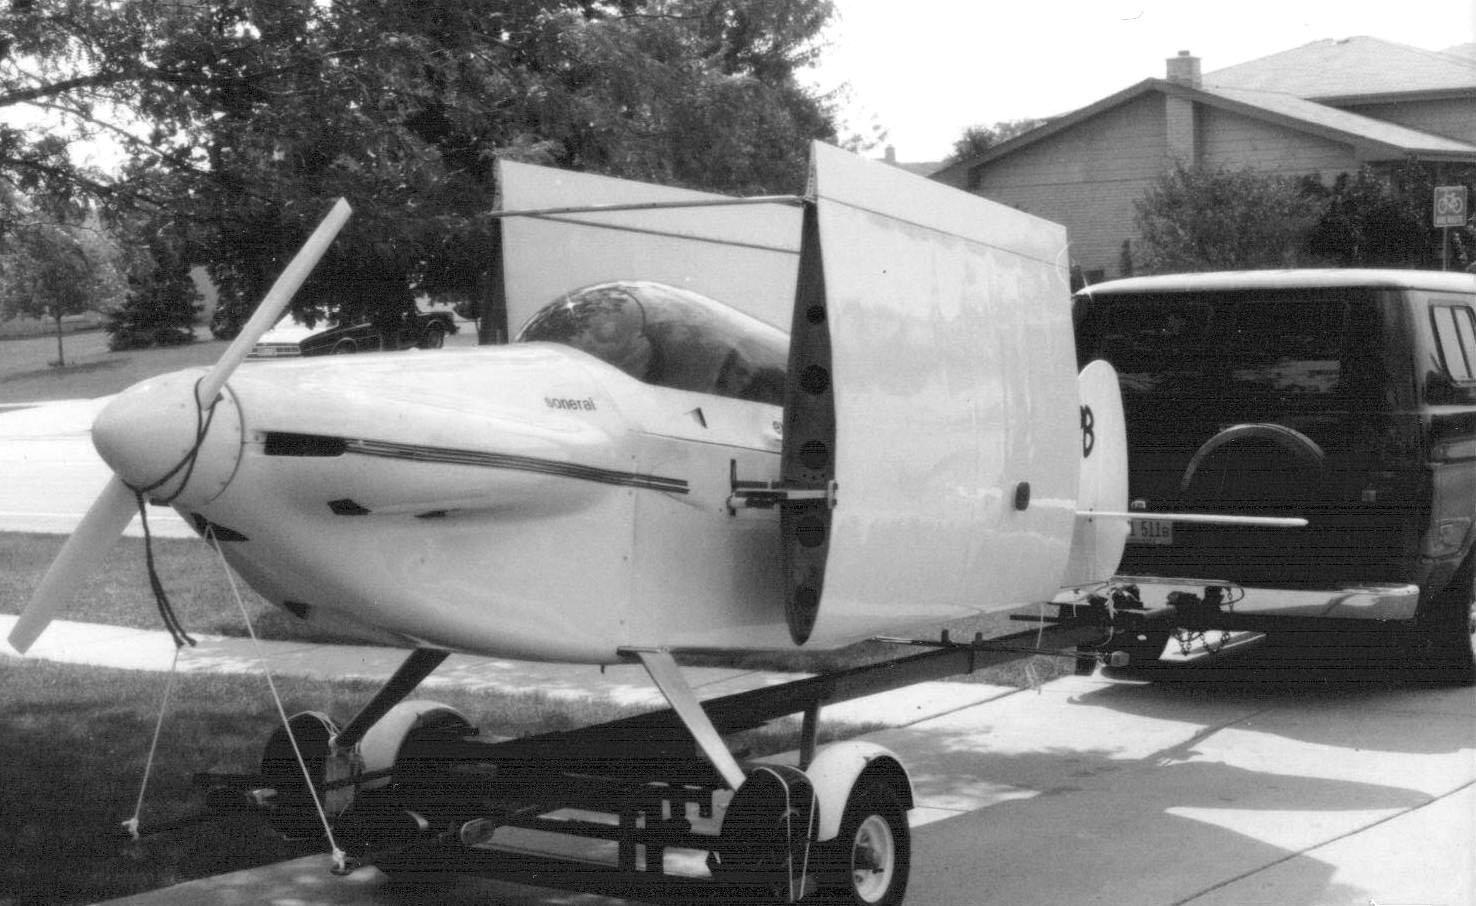 Sonerai Towed on Trailer